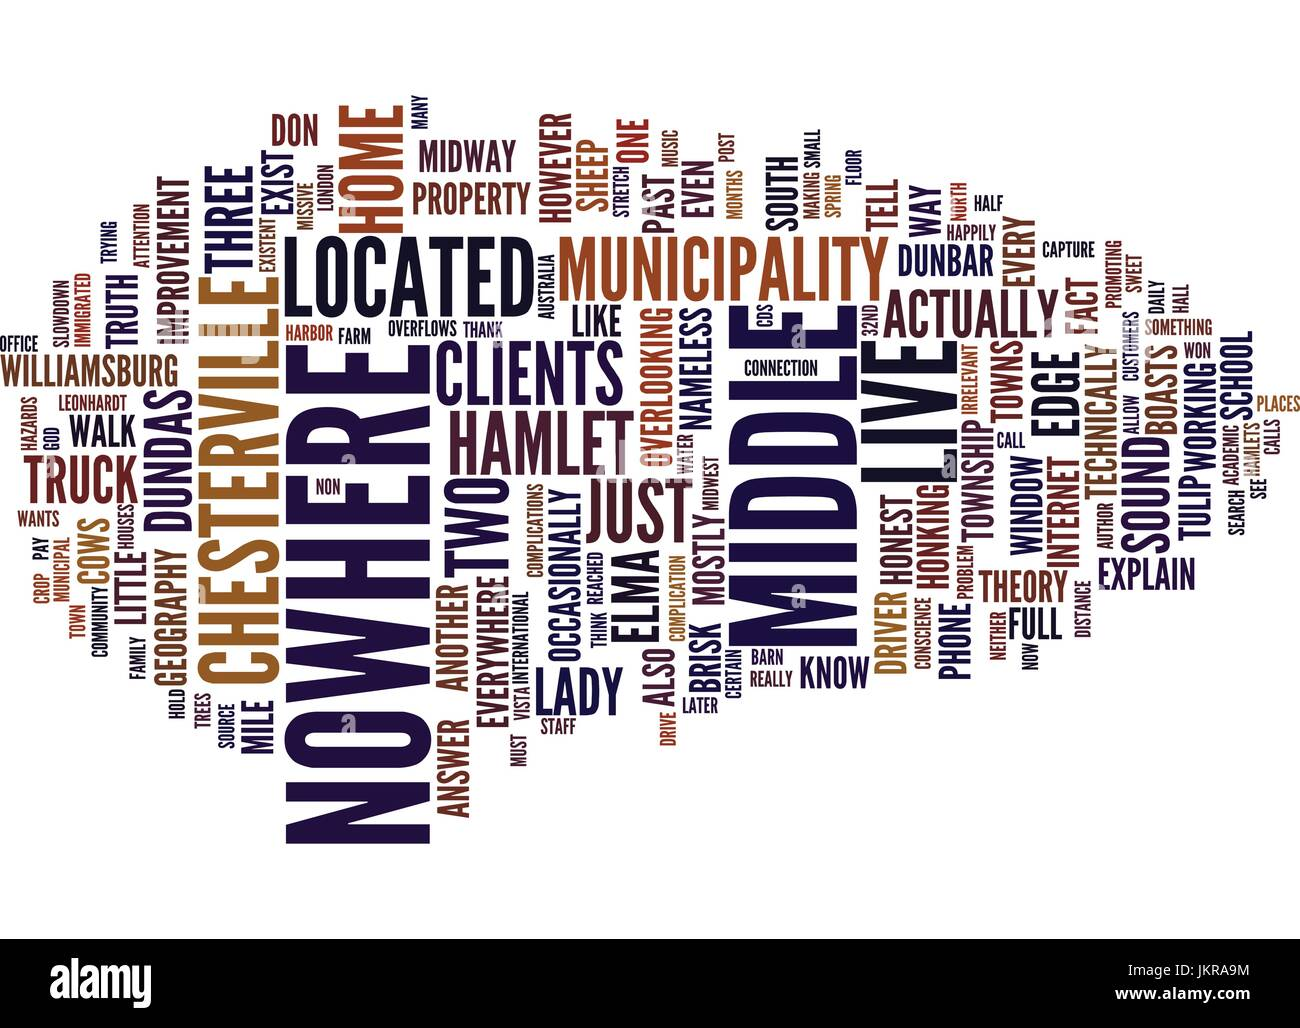 THE MIDDLE OF NOWHERE CAN YOU FIND IT ON A MAP Text Background Word Cloud Concept - Stock Vector